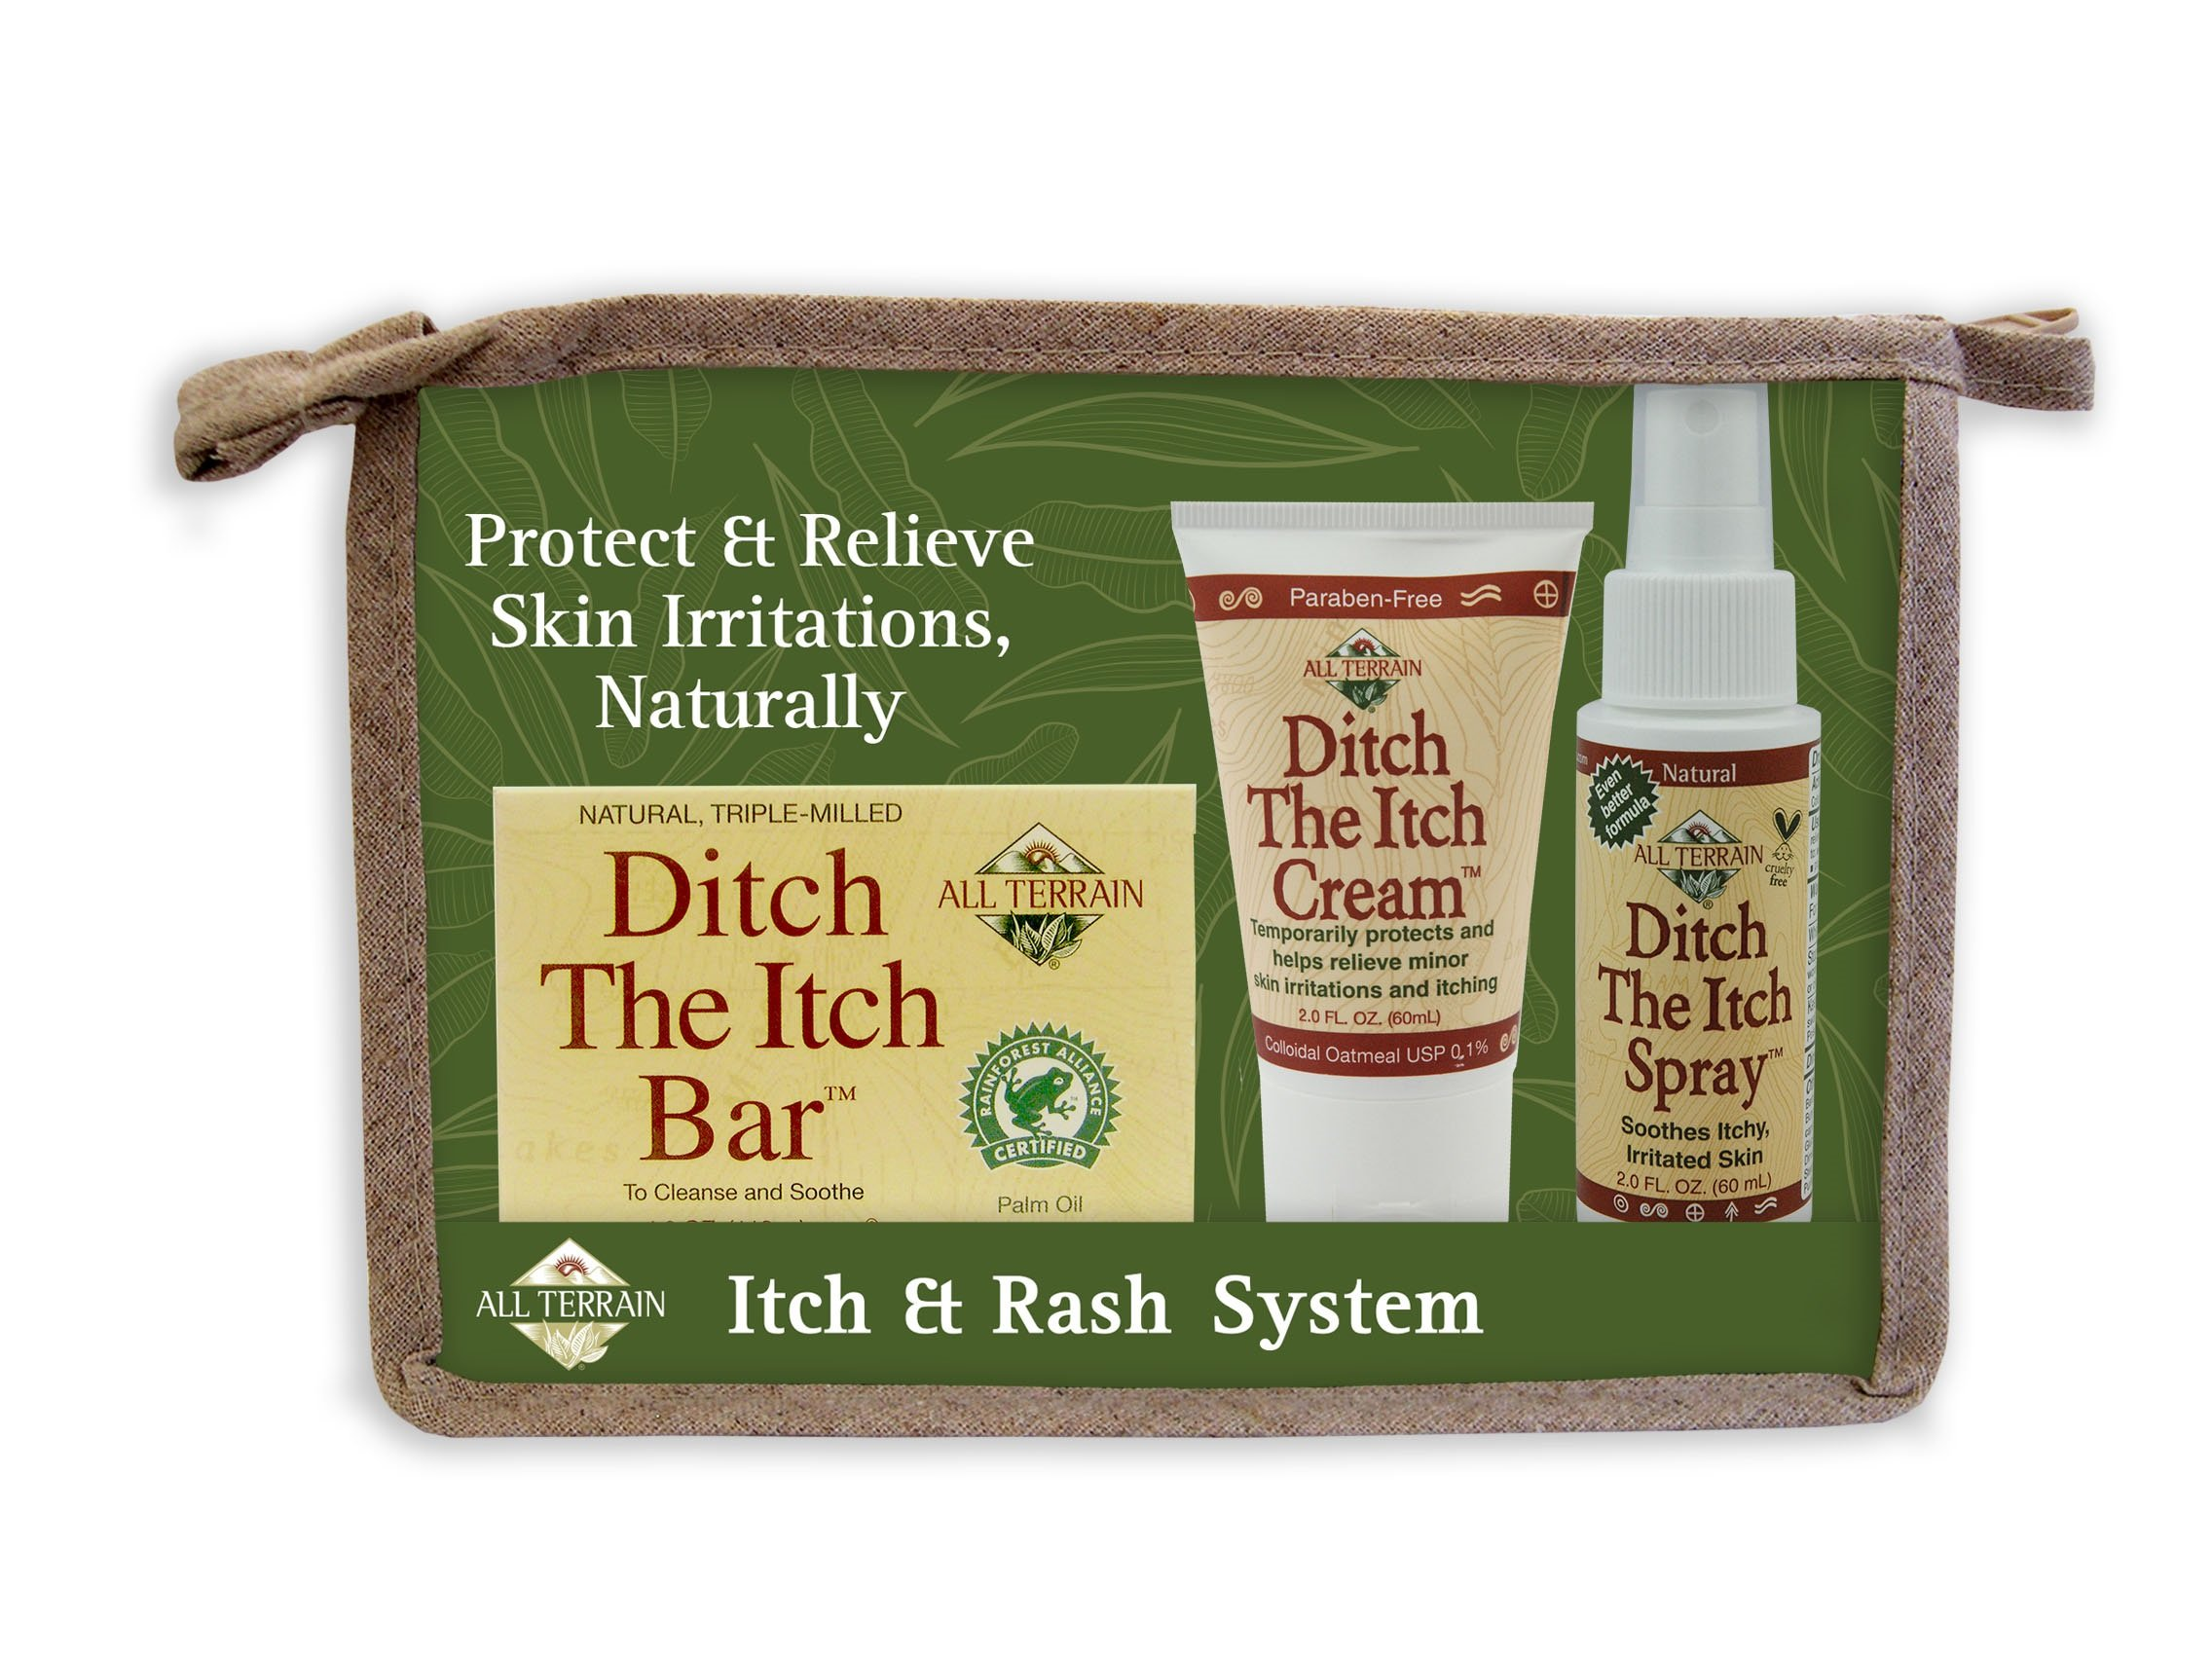 All Terrain Natural Itch & Rash System, (Bar, Cream, Spray) Helps Relieve Minor Skin Irritations & Itching Due to Poison Ivy, Oak, Sumac by All Terrain